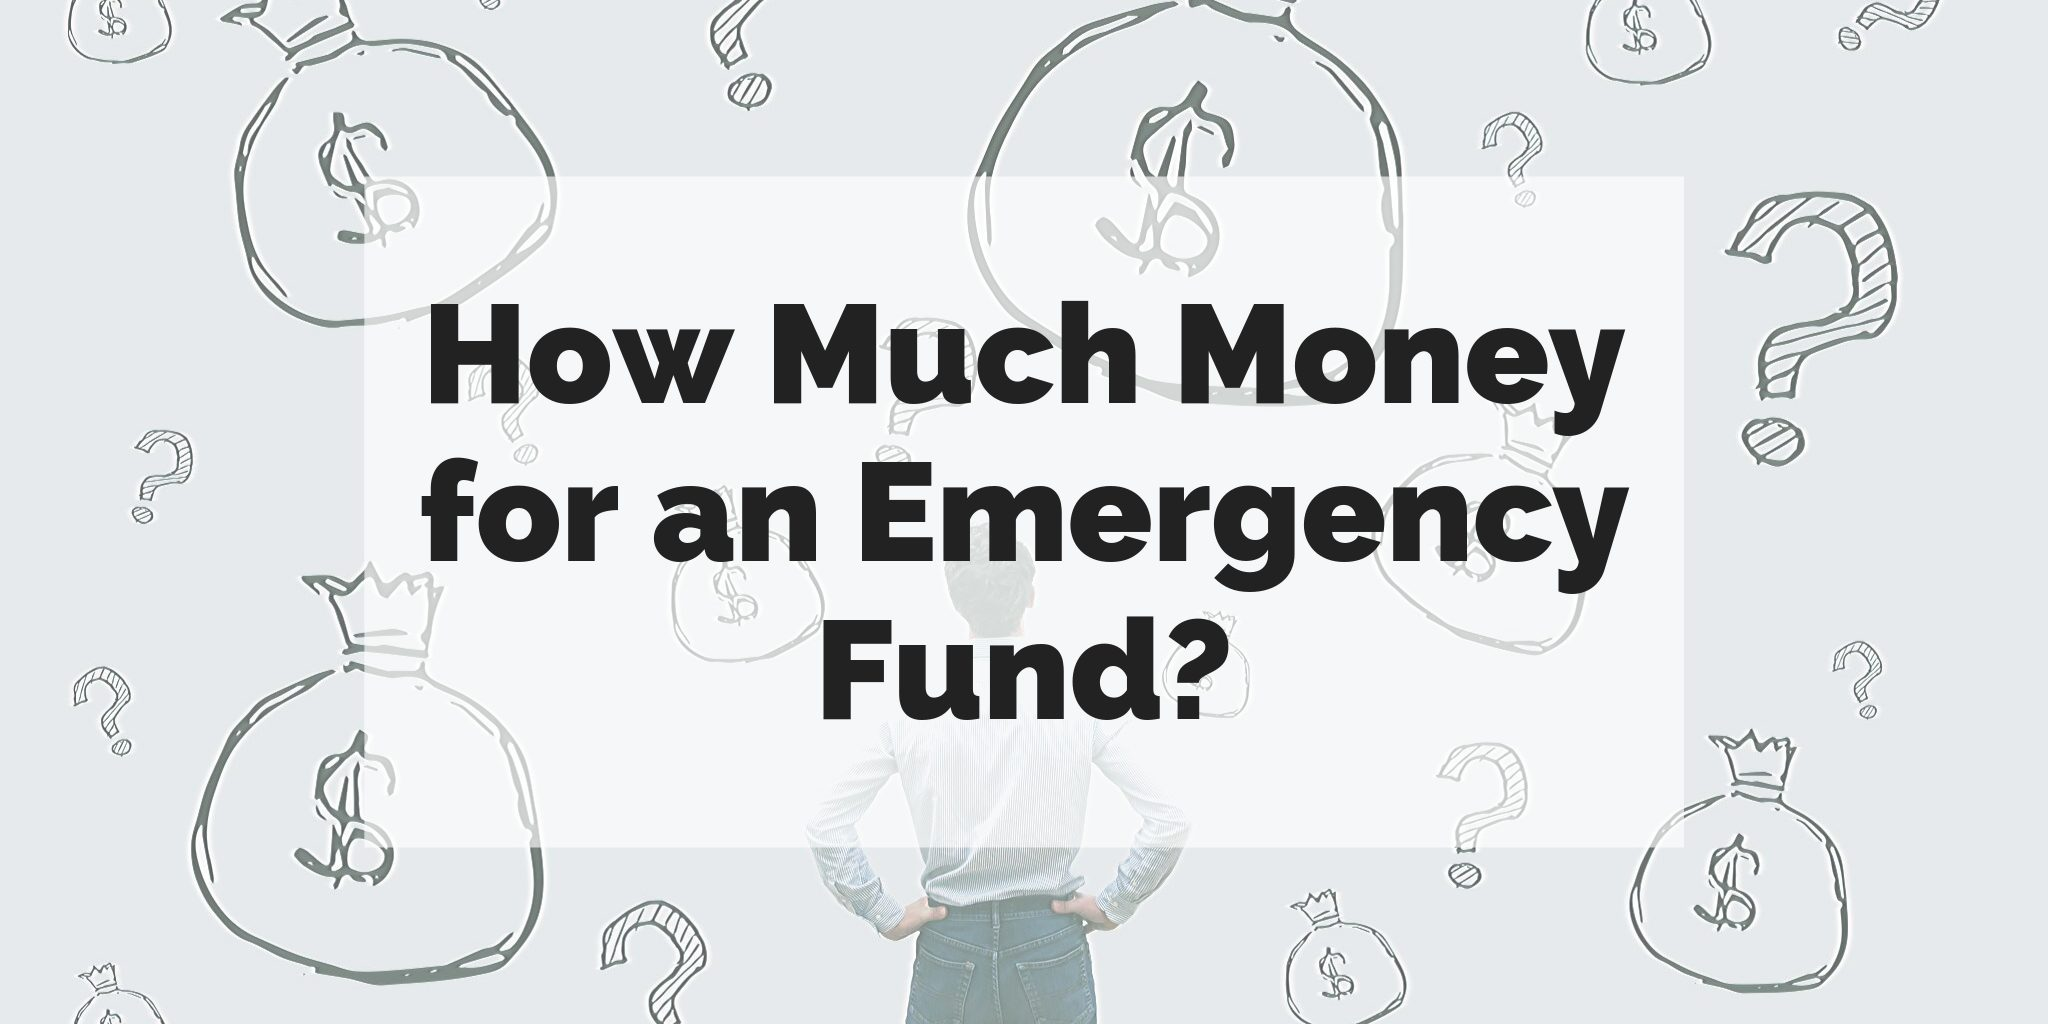 """""""How much money for an emergency fund?"""" text super-imposed over a photo of a confused man looking at a wall with question marks and money bags painted on it."""